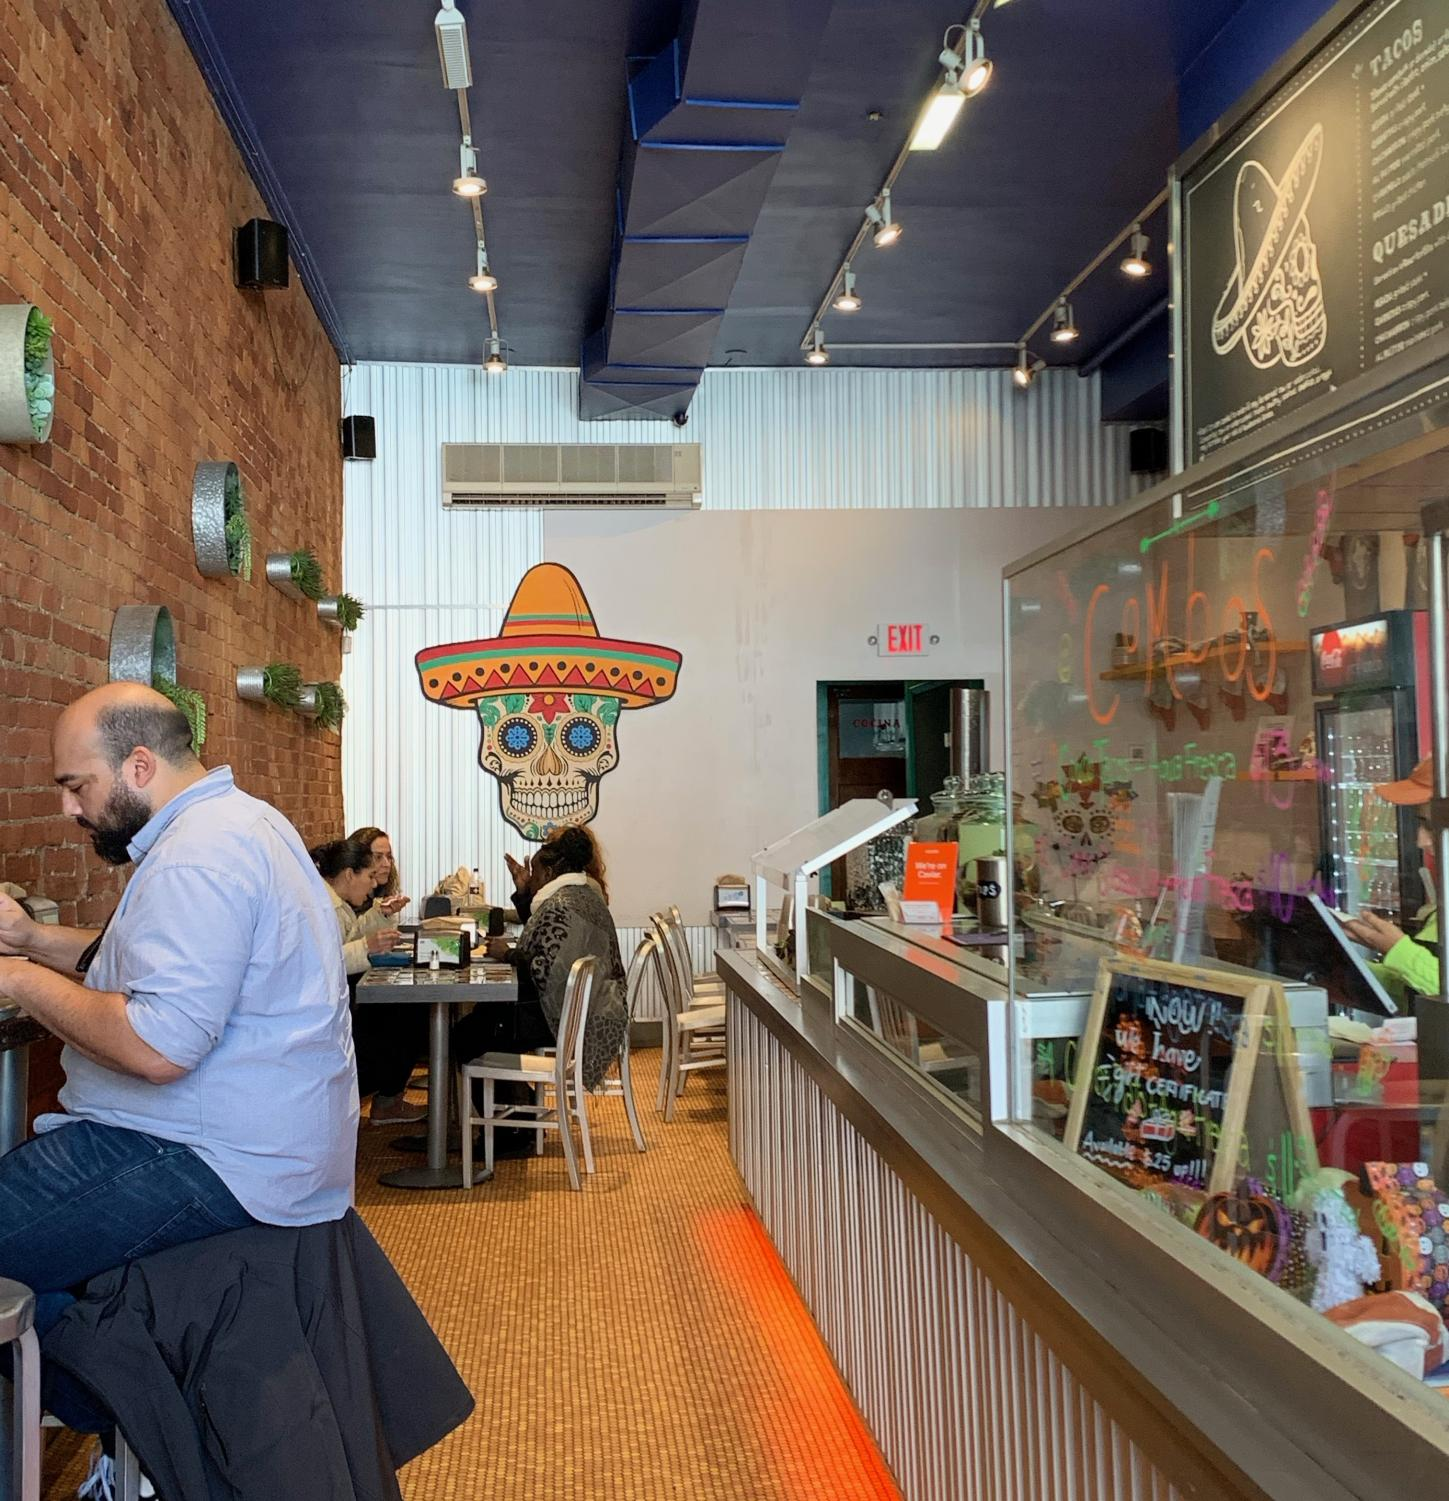 The comfortable environment of the new taqueria provides a productive spot for students to work and also offers affordable prices for delicious food.